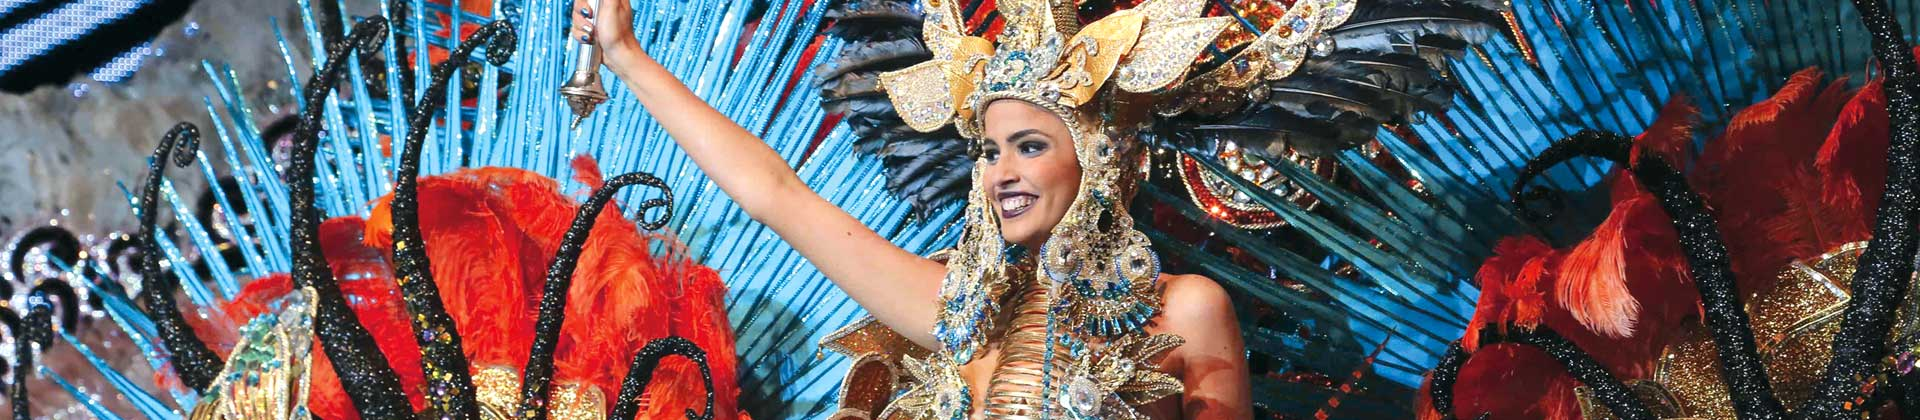 https://www.goodmorningtenerife.com/wp-content/uploads/2014/08/03_slide_carnival_GM_Tenerife.jpg